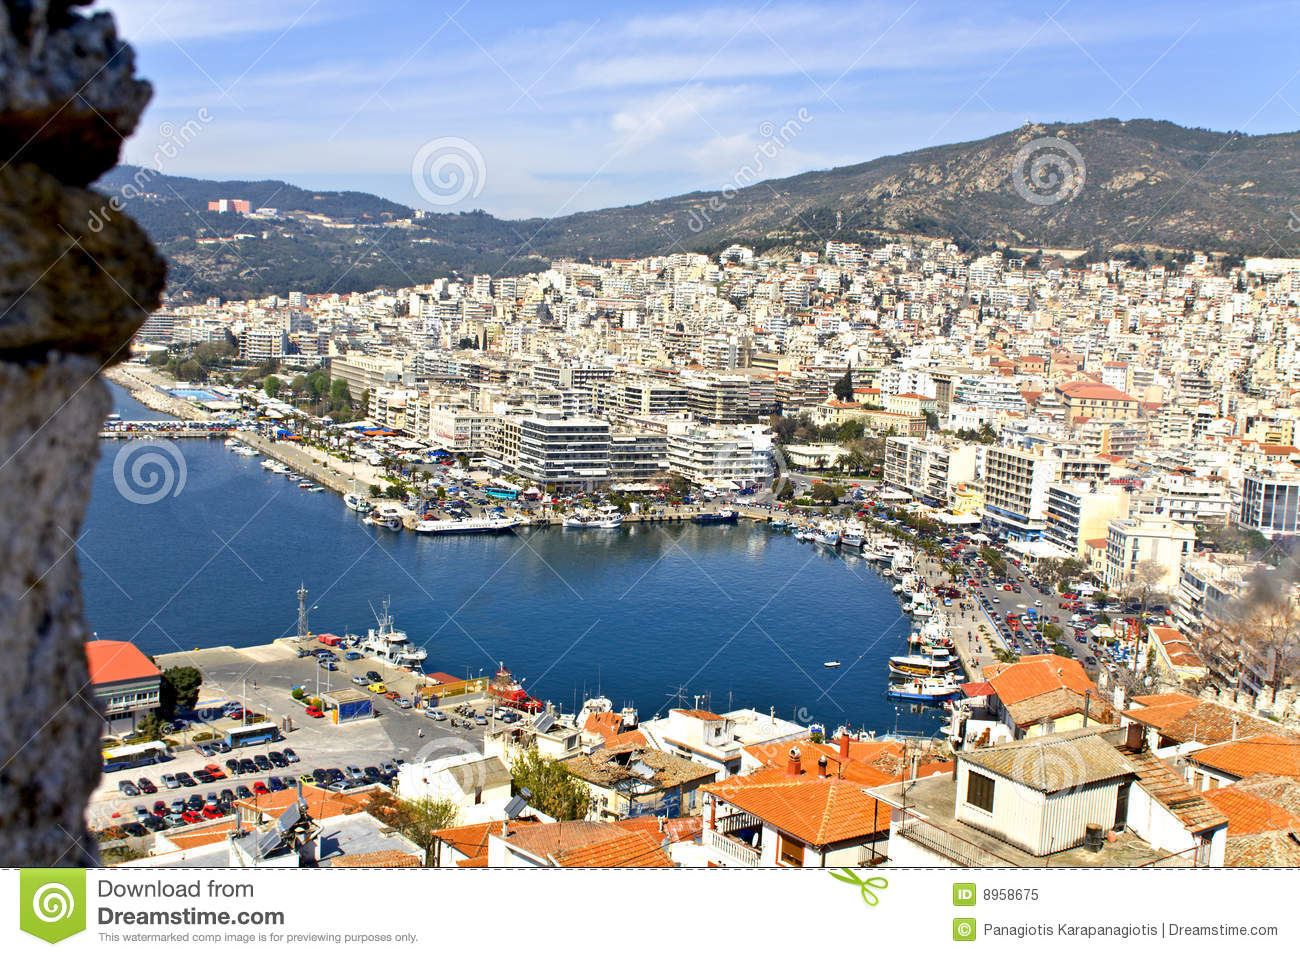 Resort city of Kavala in Greece